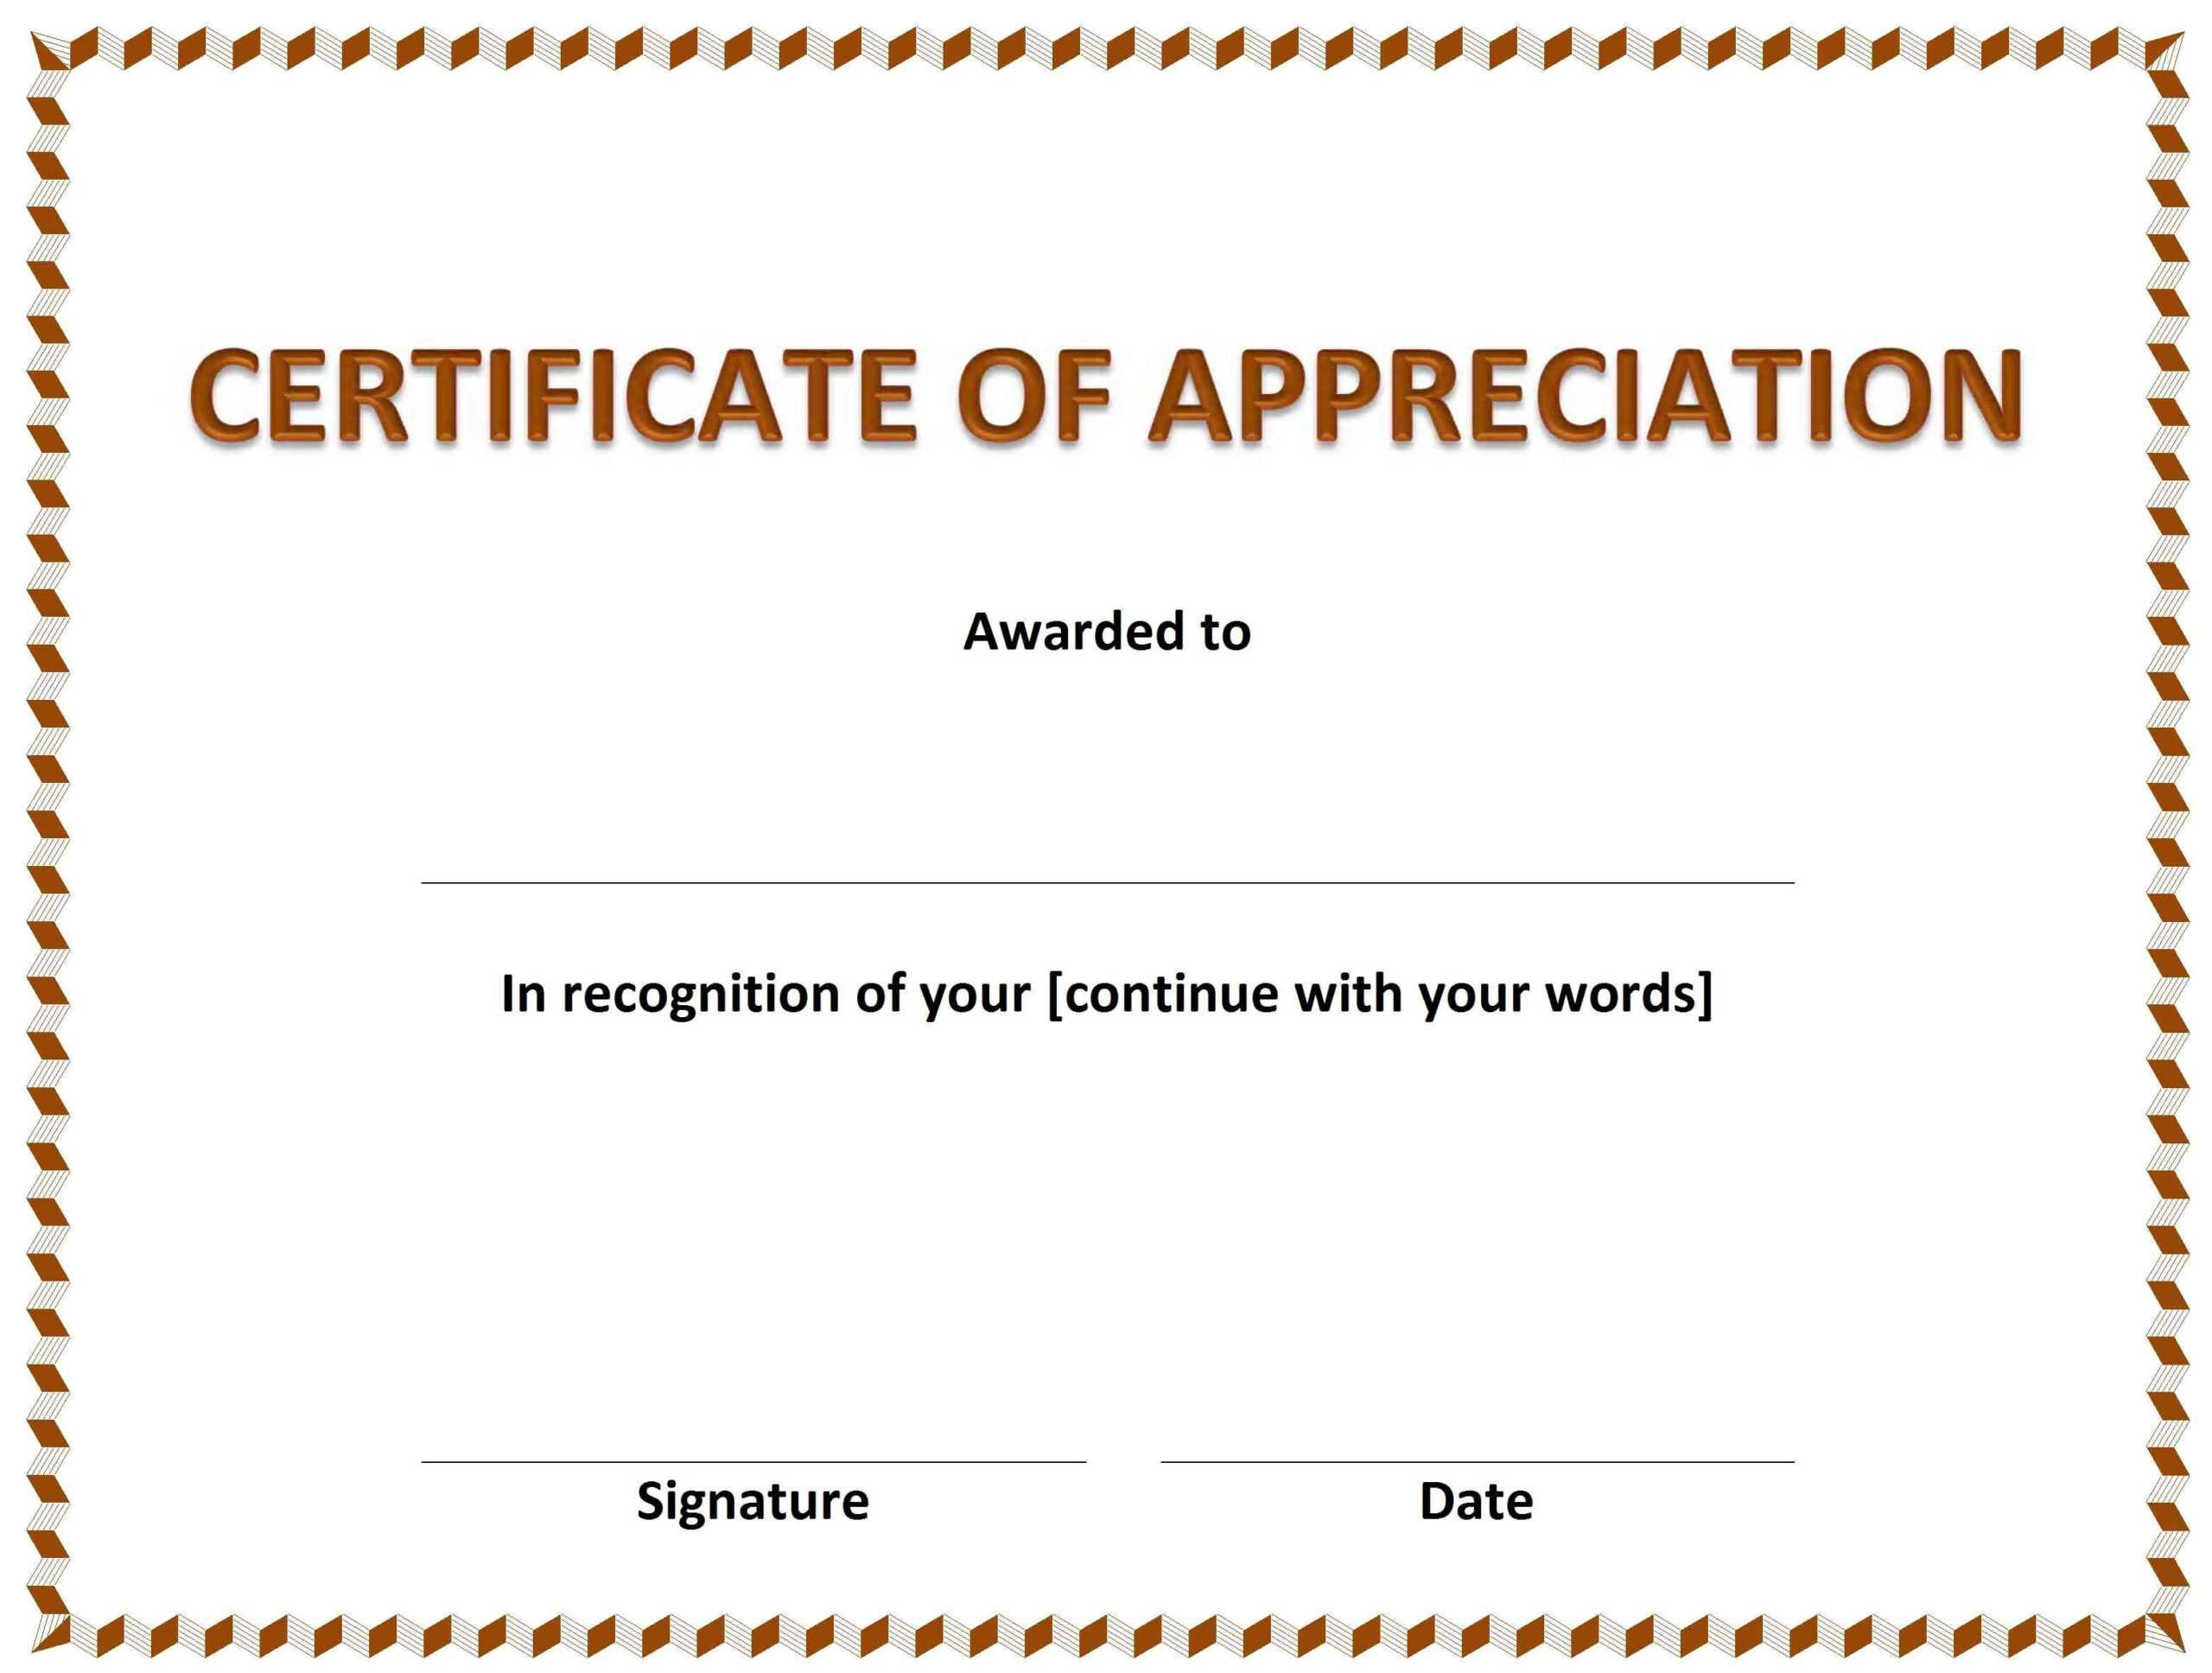 Certificate Of Appreciation » Officetemplates Regarding Template For Certificate Of Appreciation In Microsoft Word